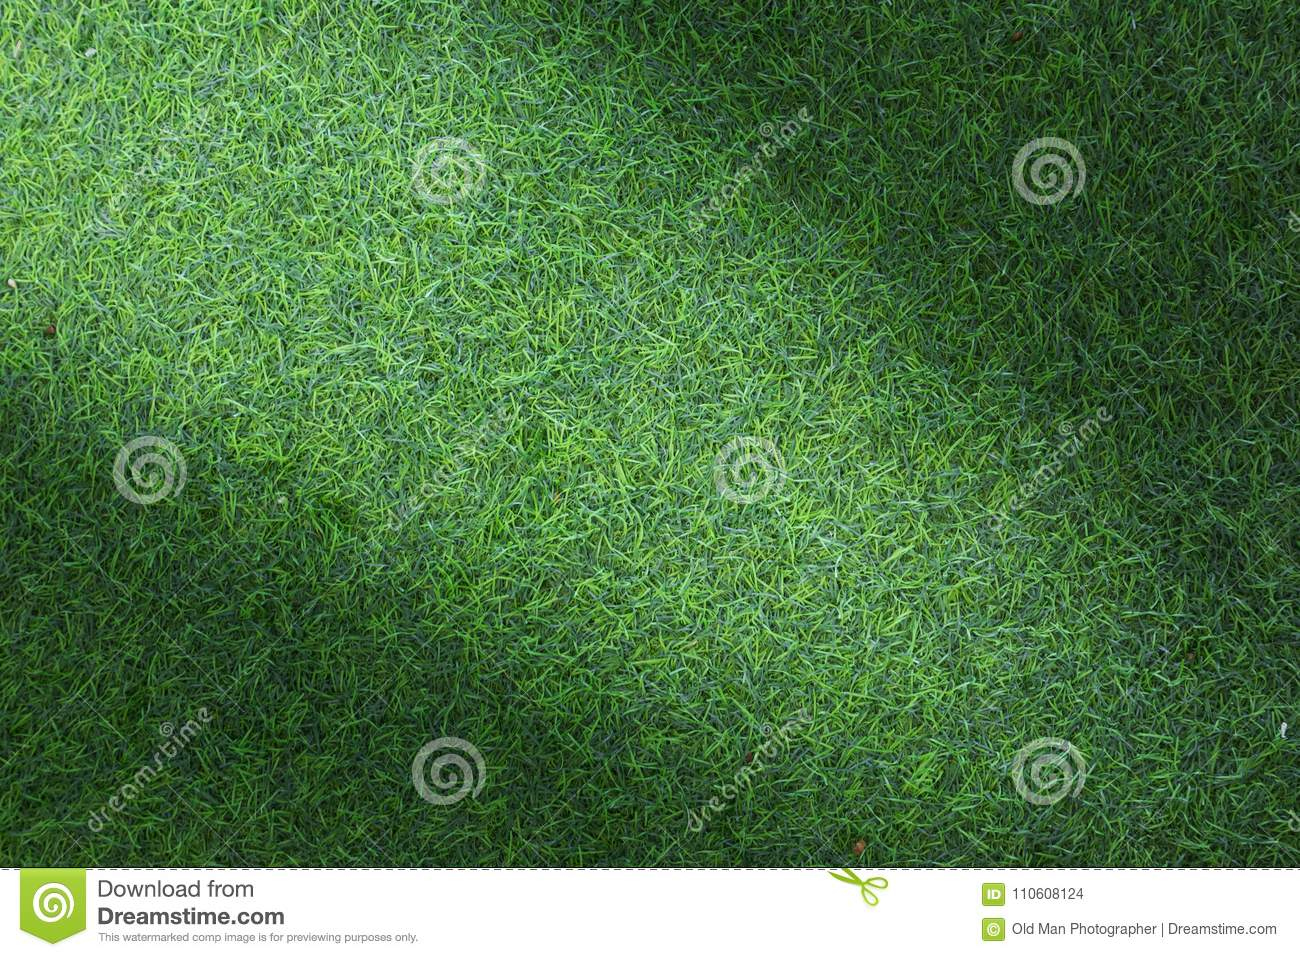 Grass texture or grass background. Green grass for golf course, soccer field or sports background concept design.